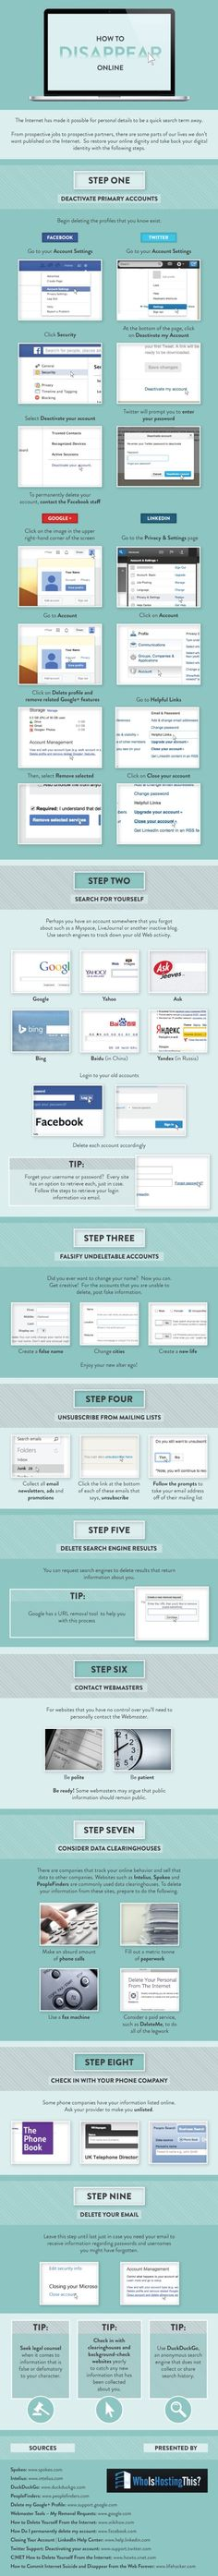 Social Media Infographic - How to disappear on the internet